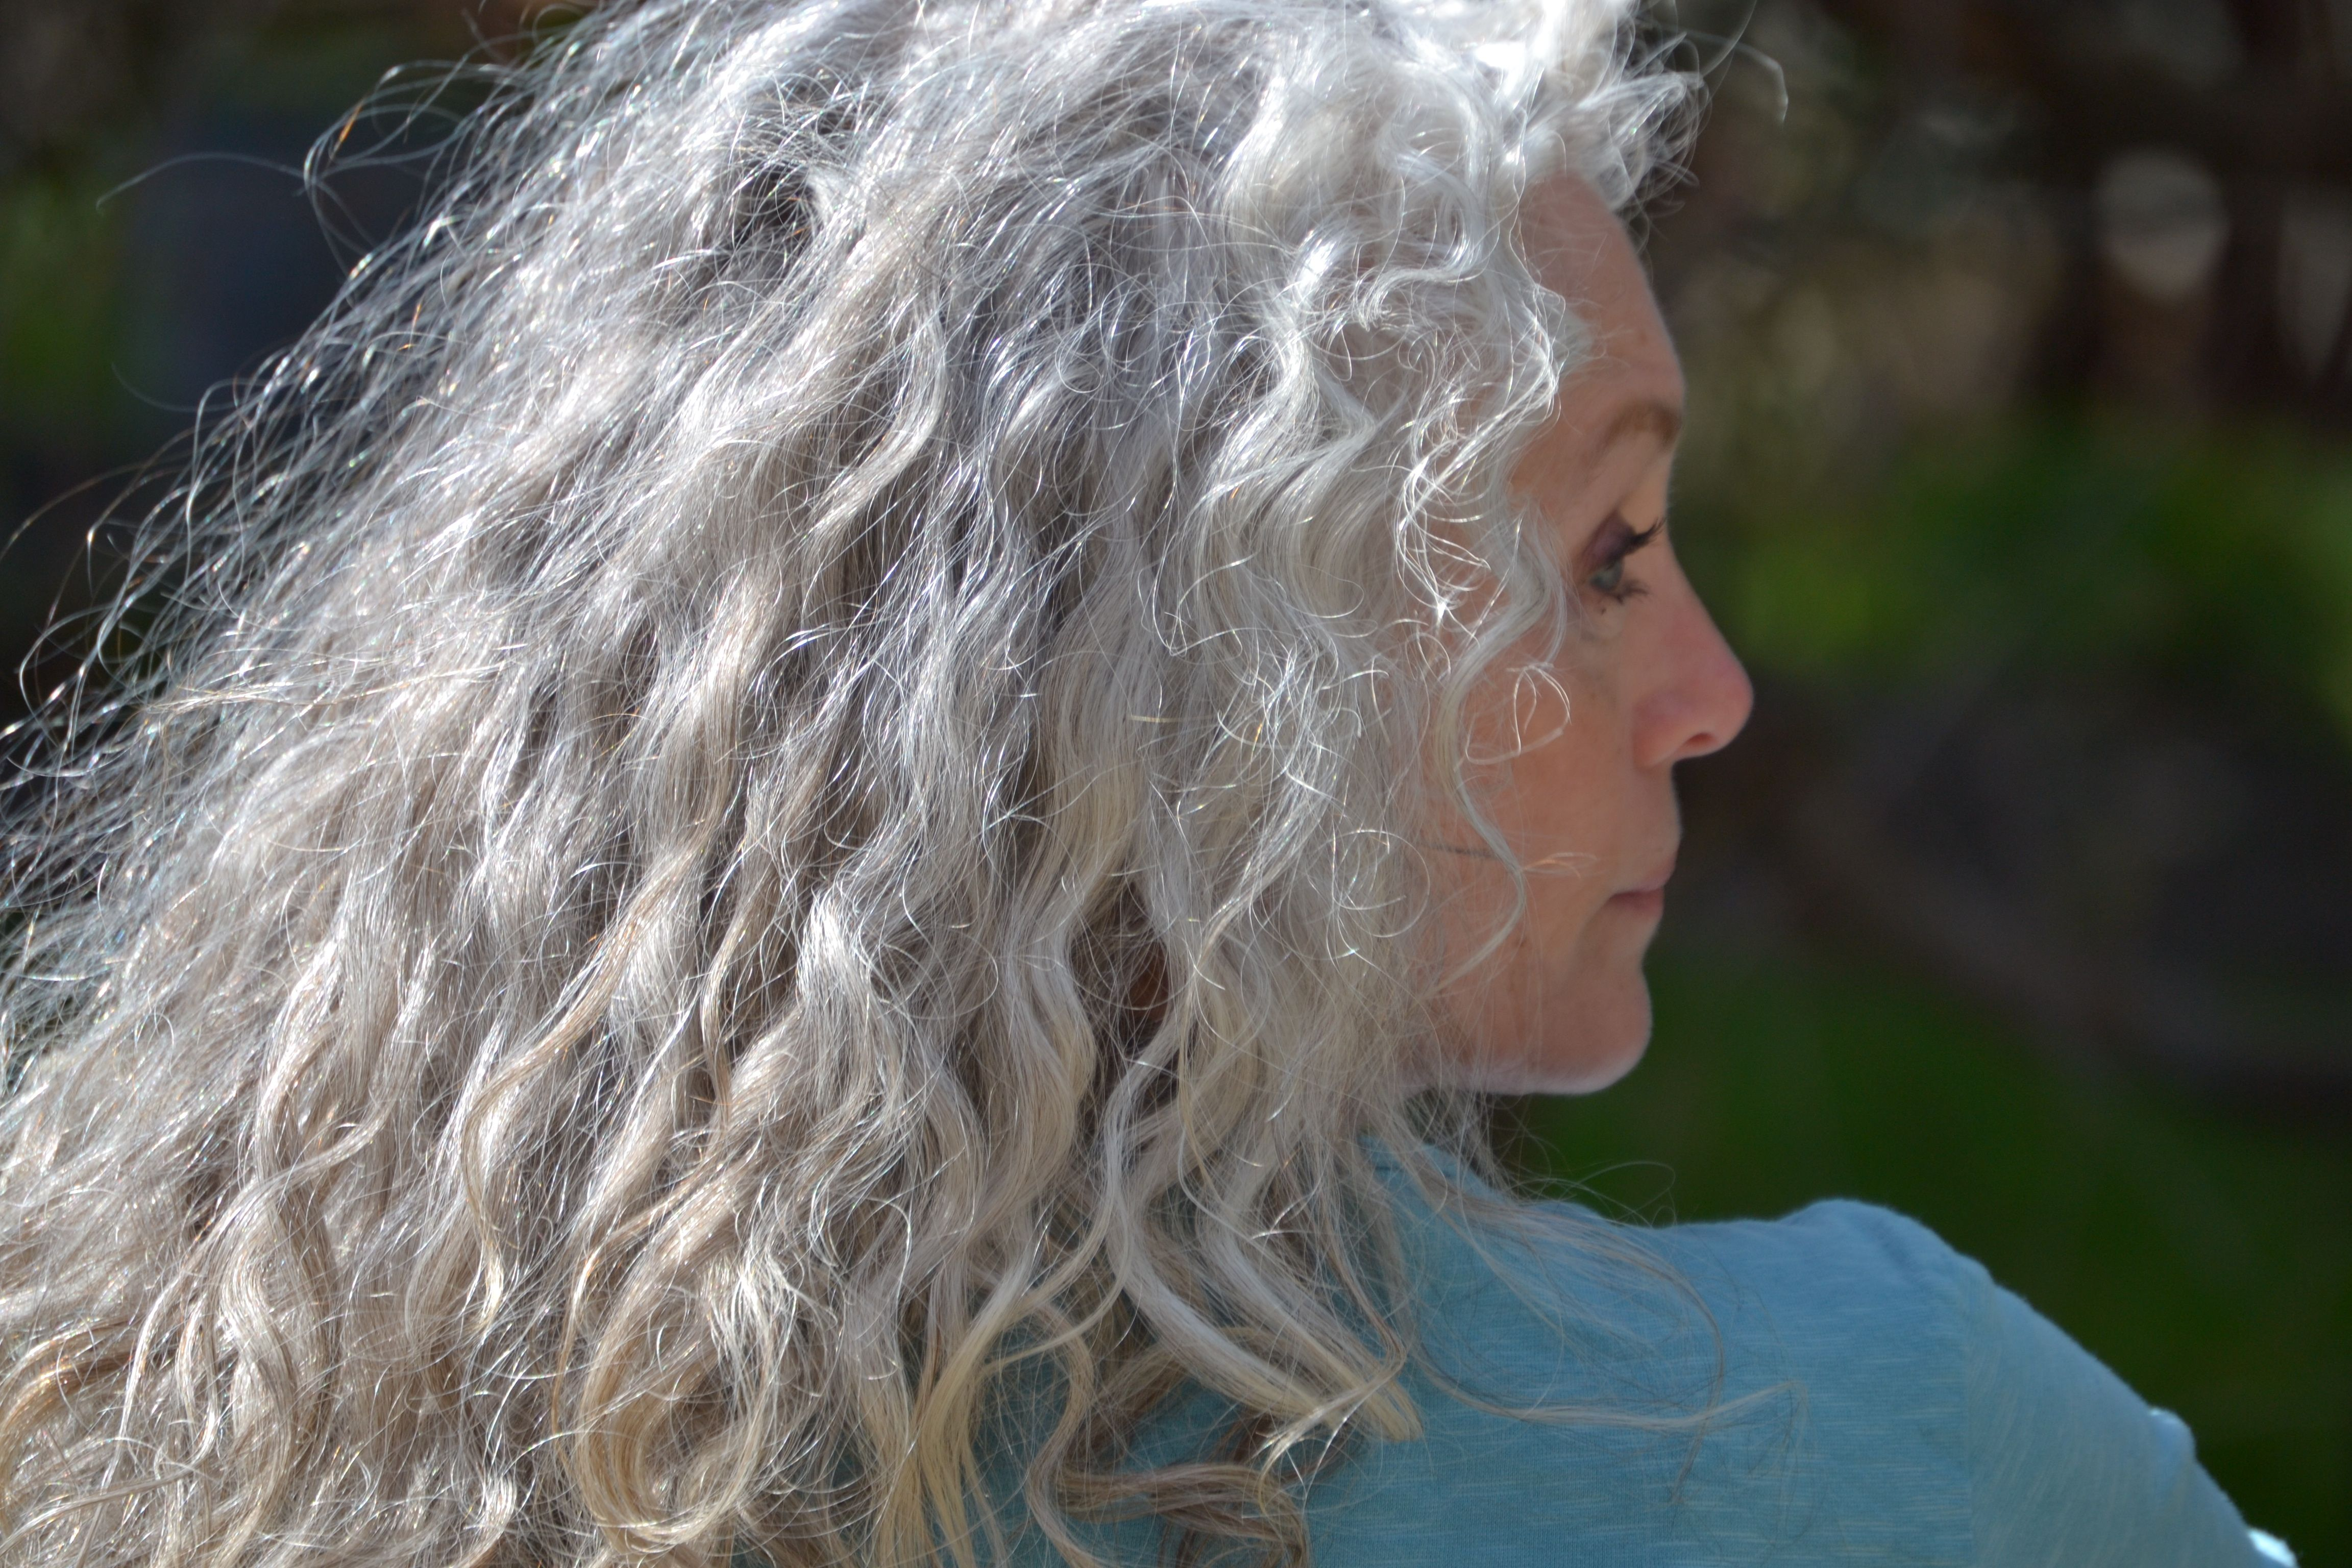 My Favorite Type Of Hair Long Naturally Curly And A Bit Untamed Silver White Hair Grey Hair Styles For Women Long Gray Hair